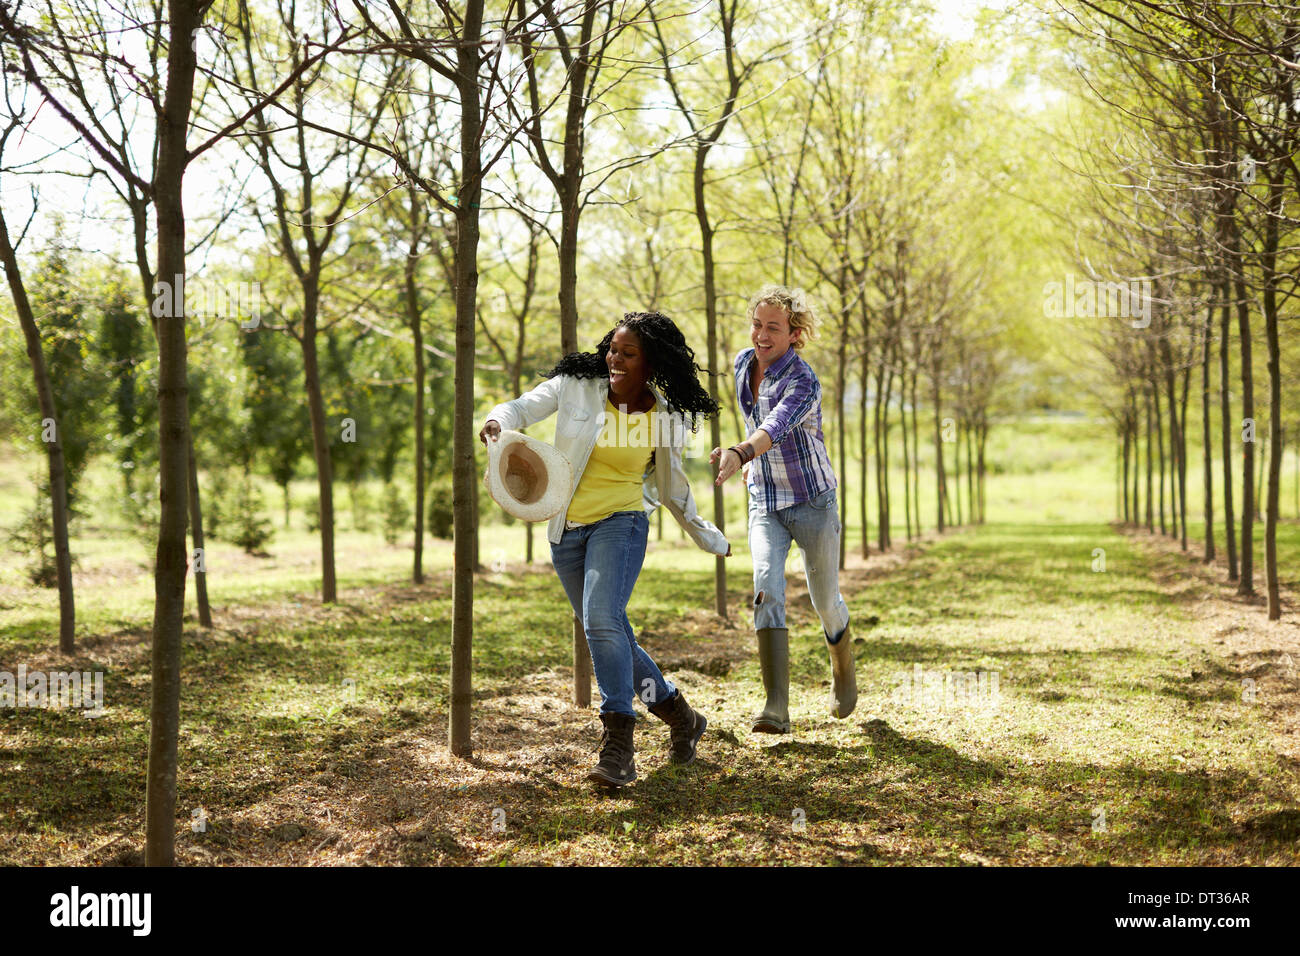 A girl stealing a young man's hat and running away with it - Stock Image